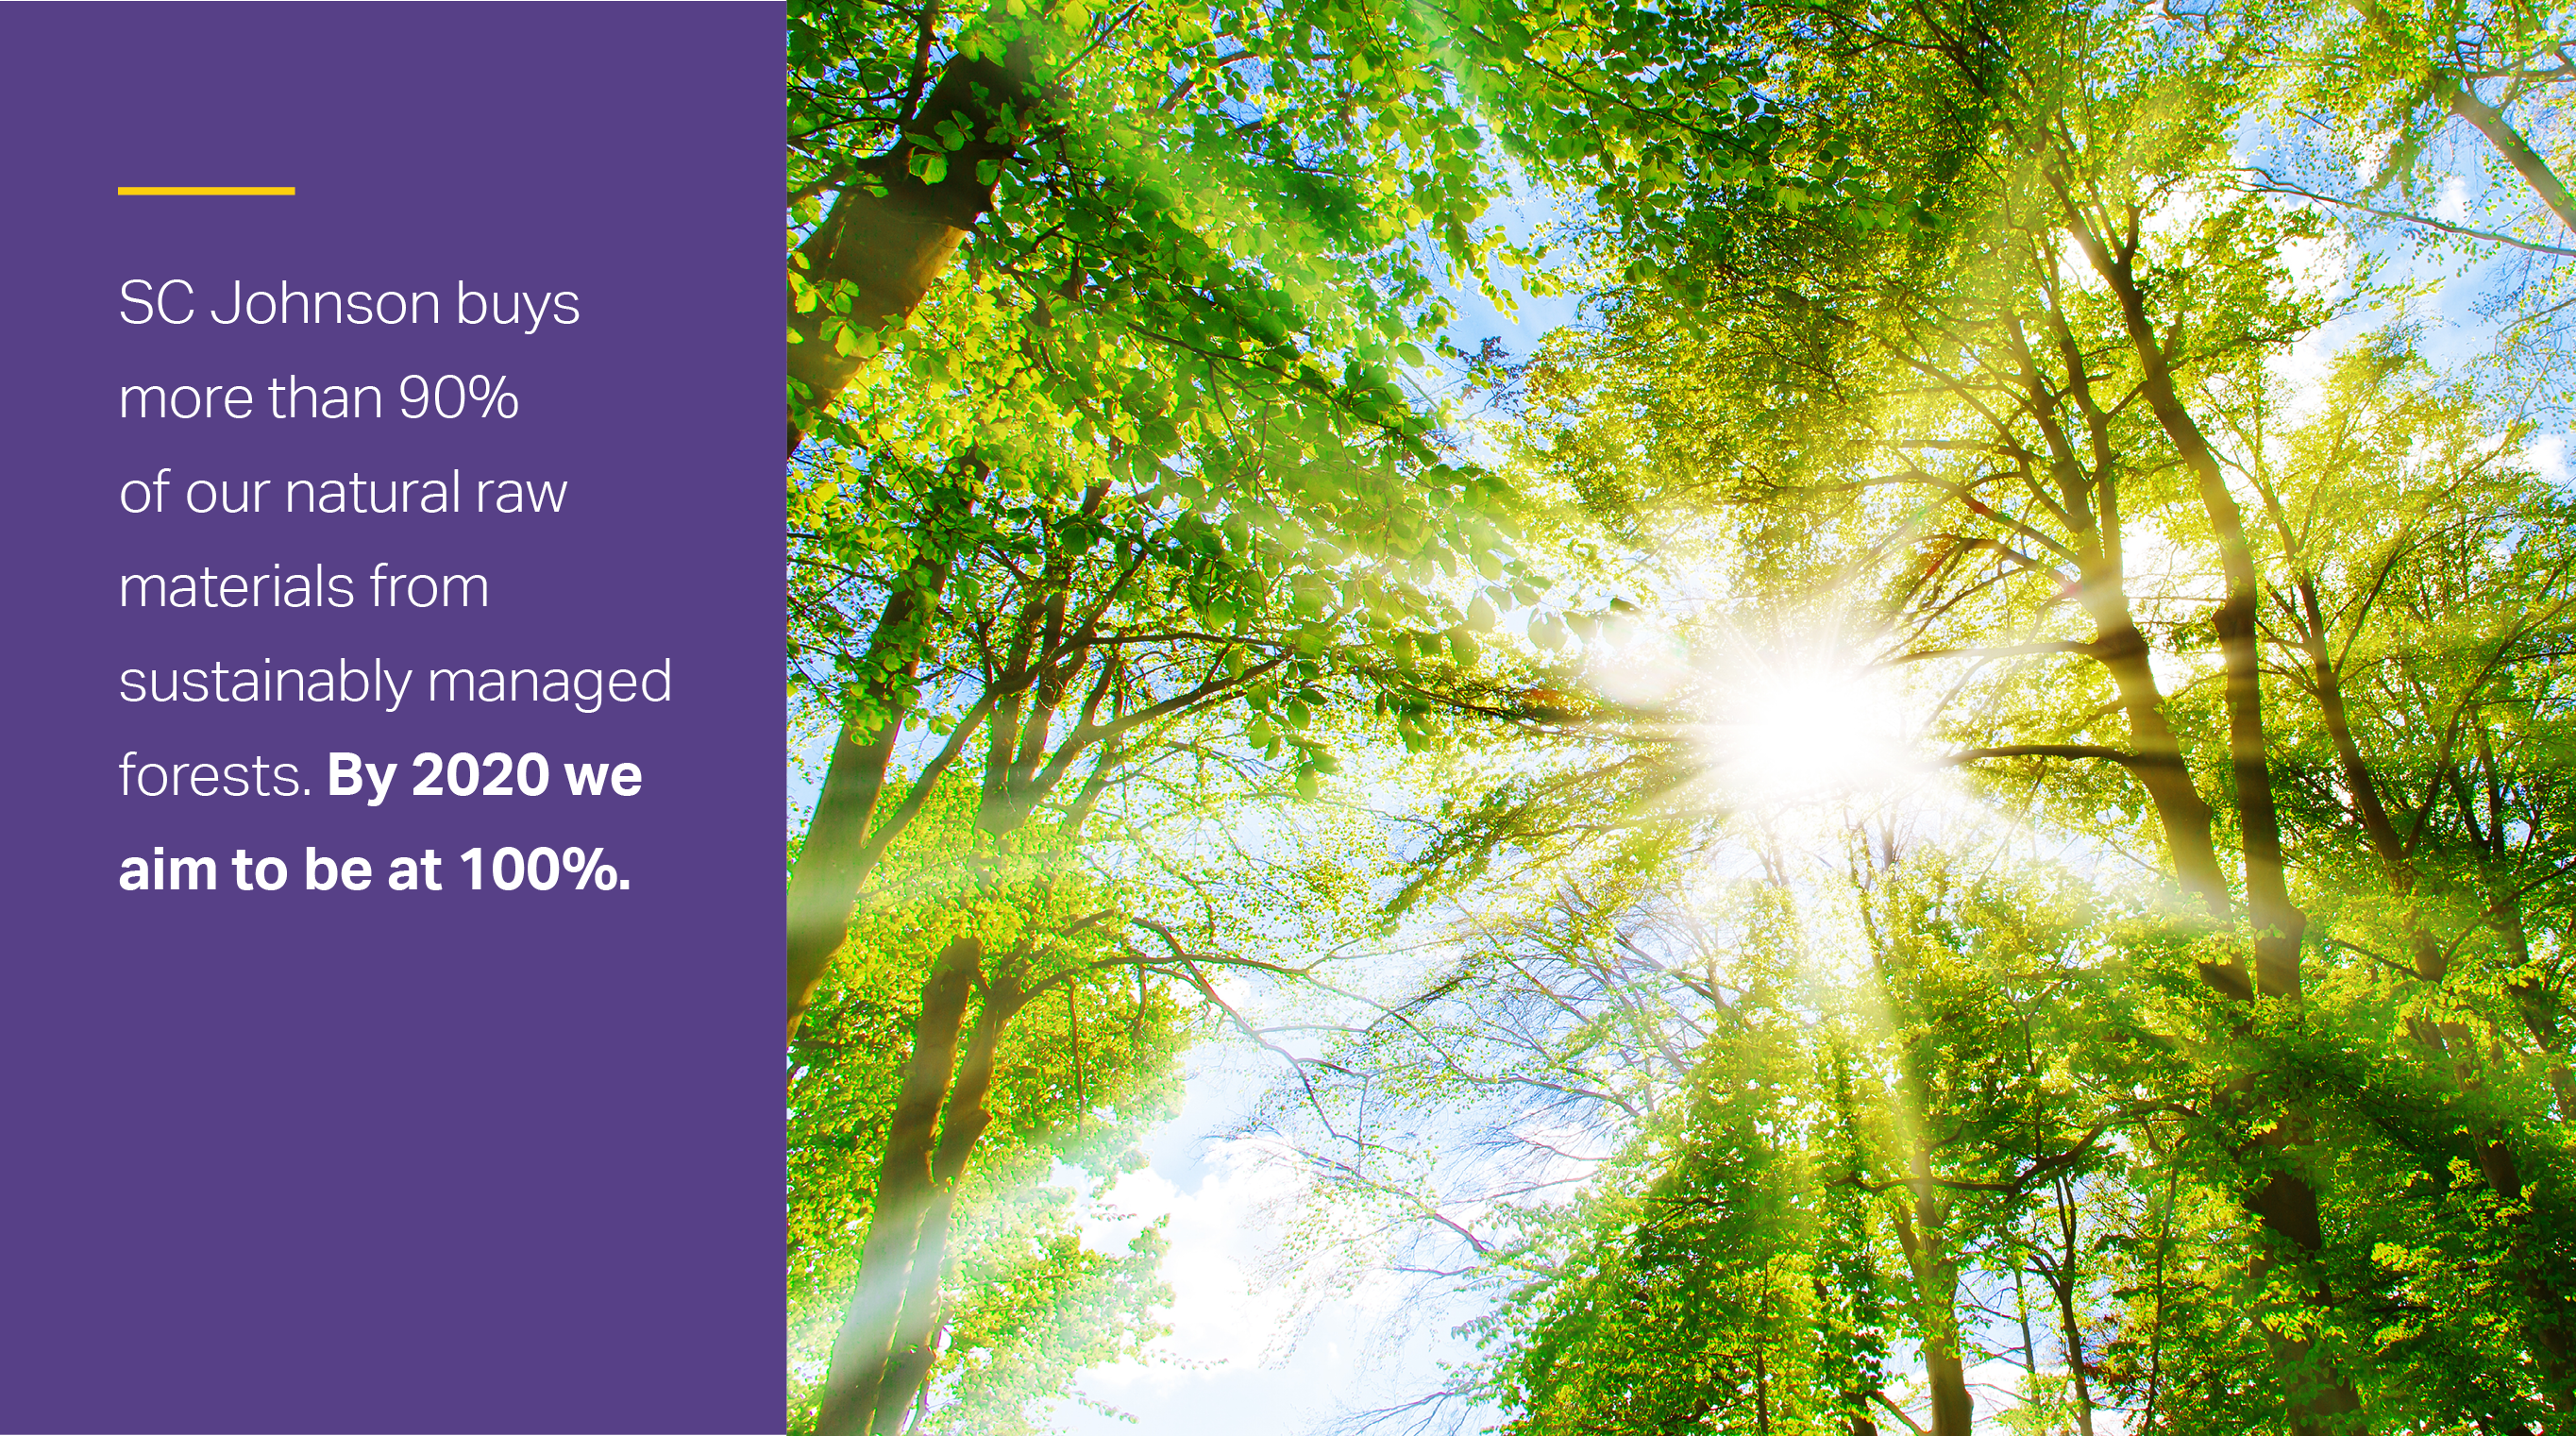 infographic tile: sun peering through the trees. Text reads: SC Johnson buys more than 90% of our raw materials from sustainably manager forests. By 2020 we aim to be at 100%.